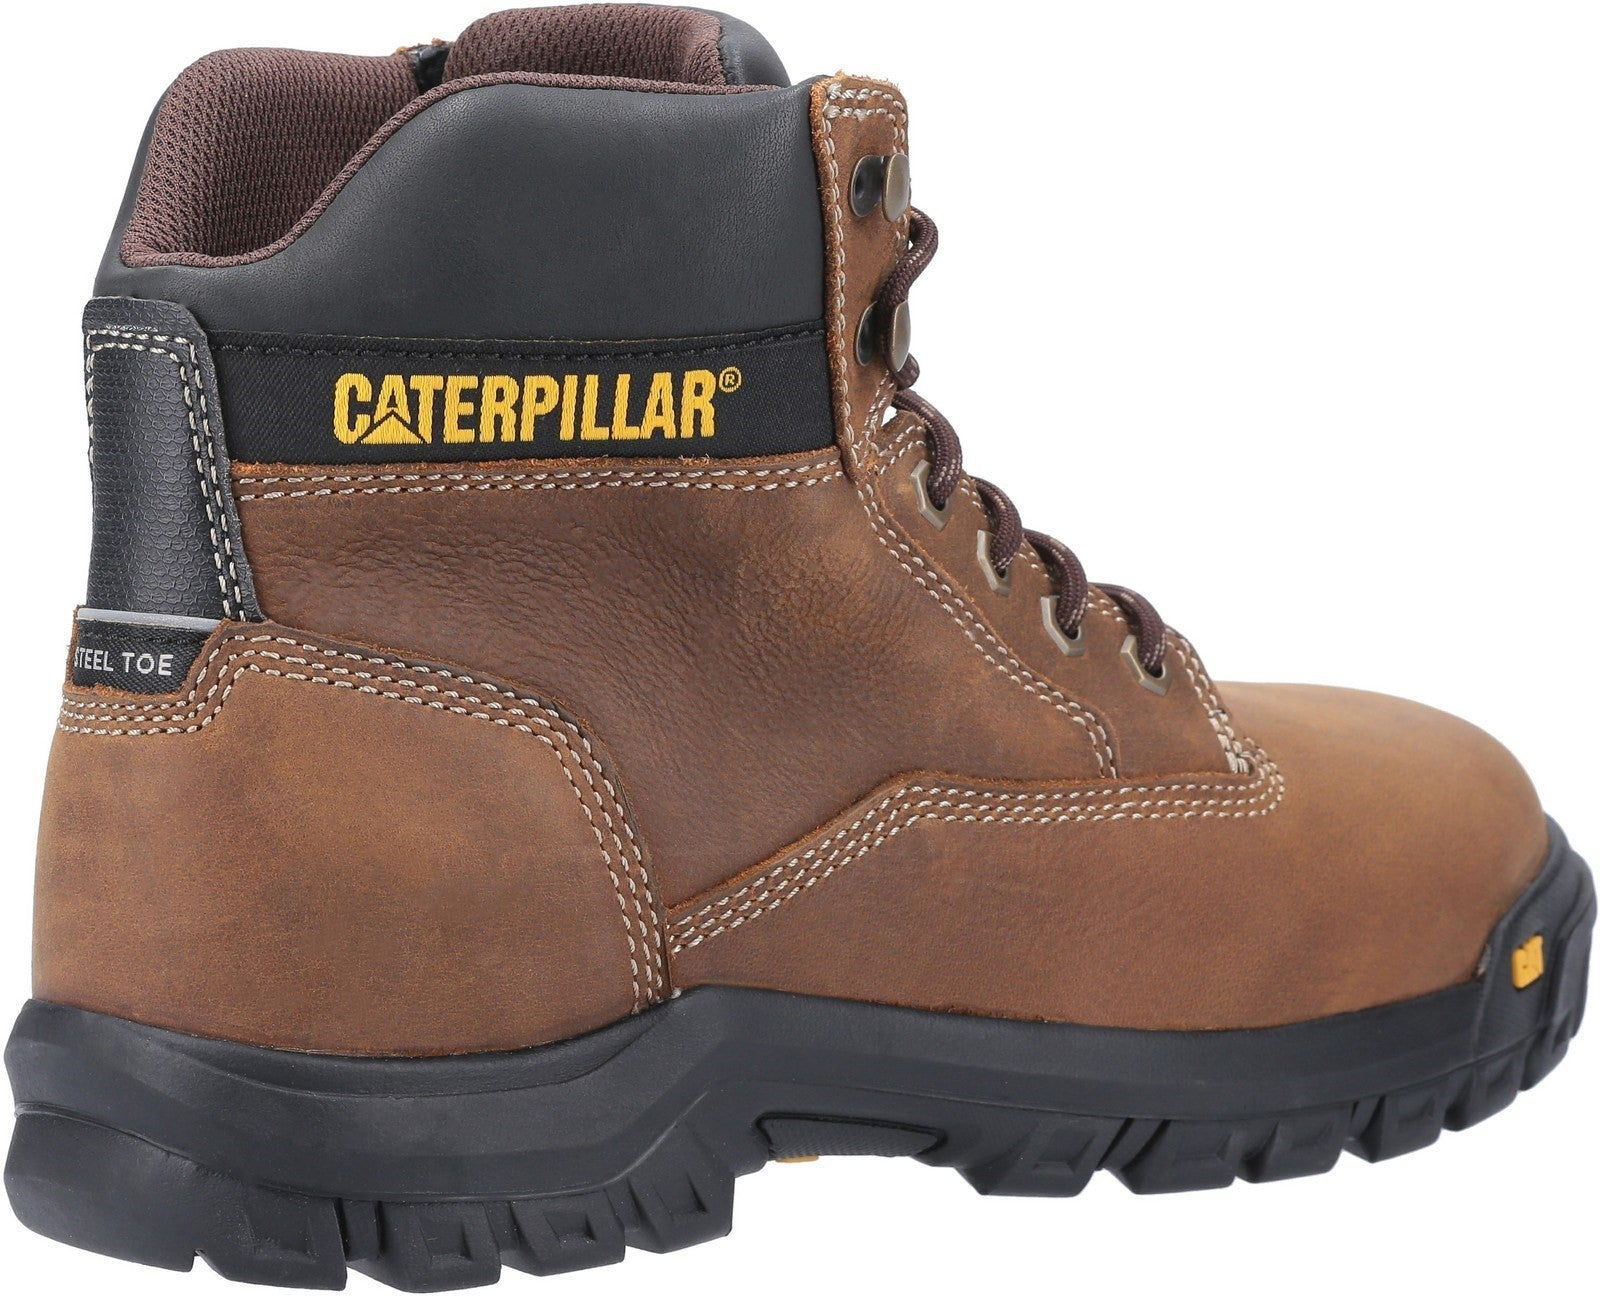 Caterpillar Men's Median S3 Lace Up Safety Boot Brown 30432